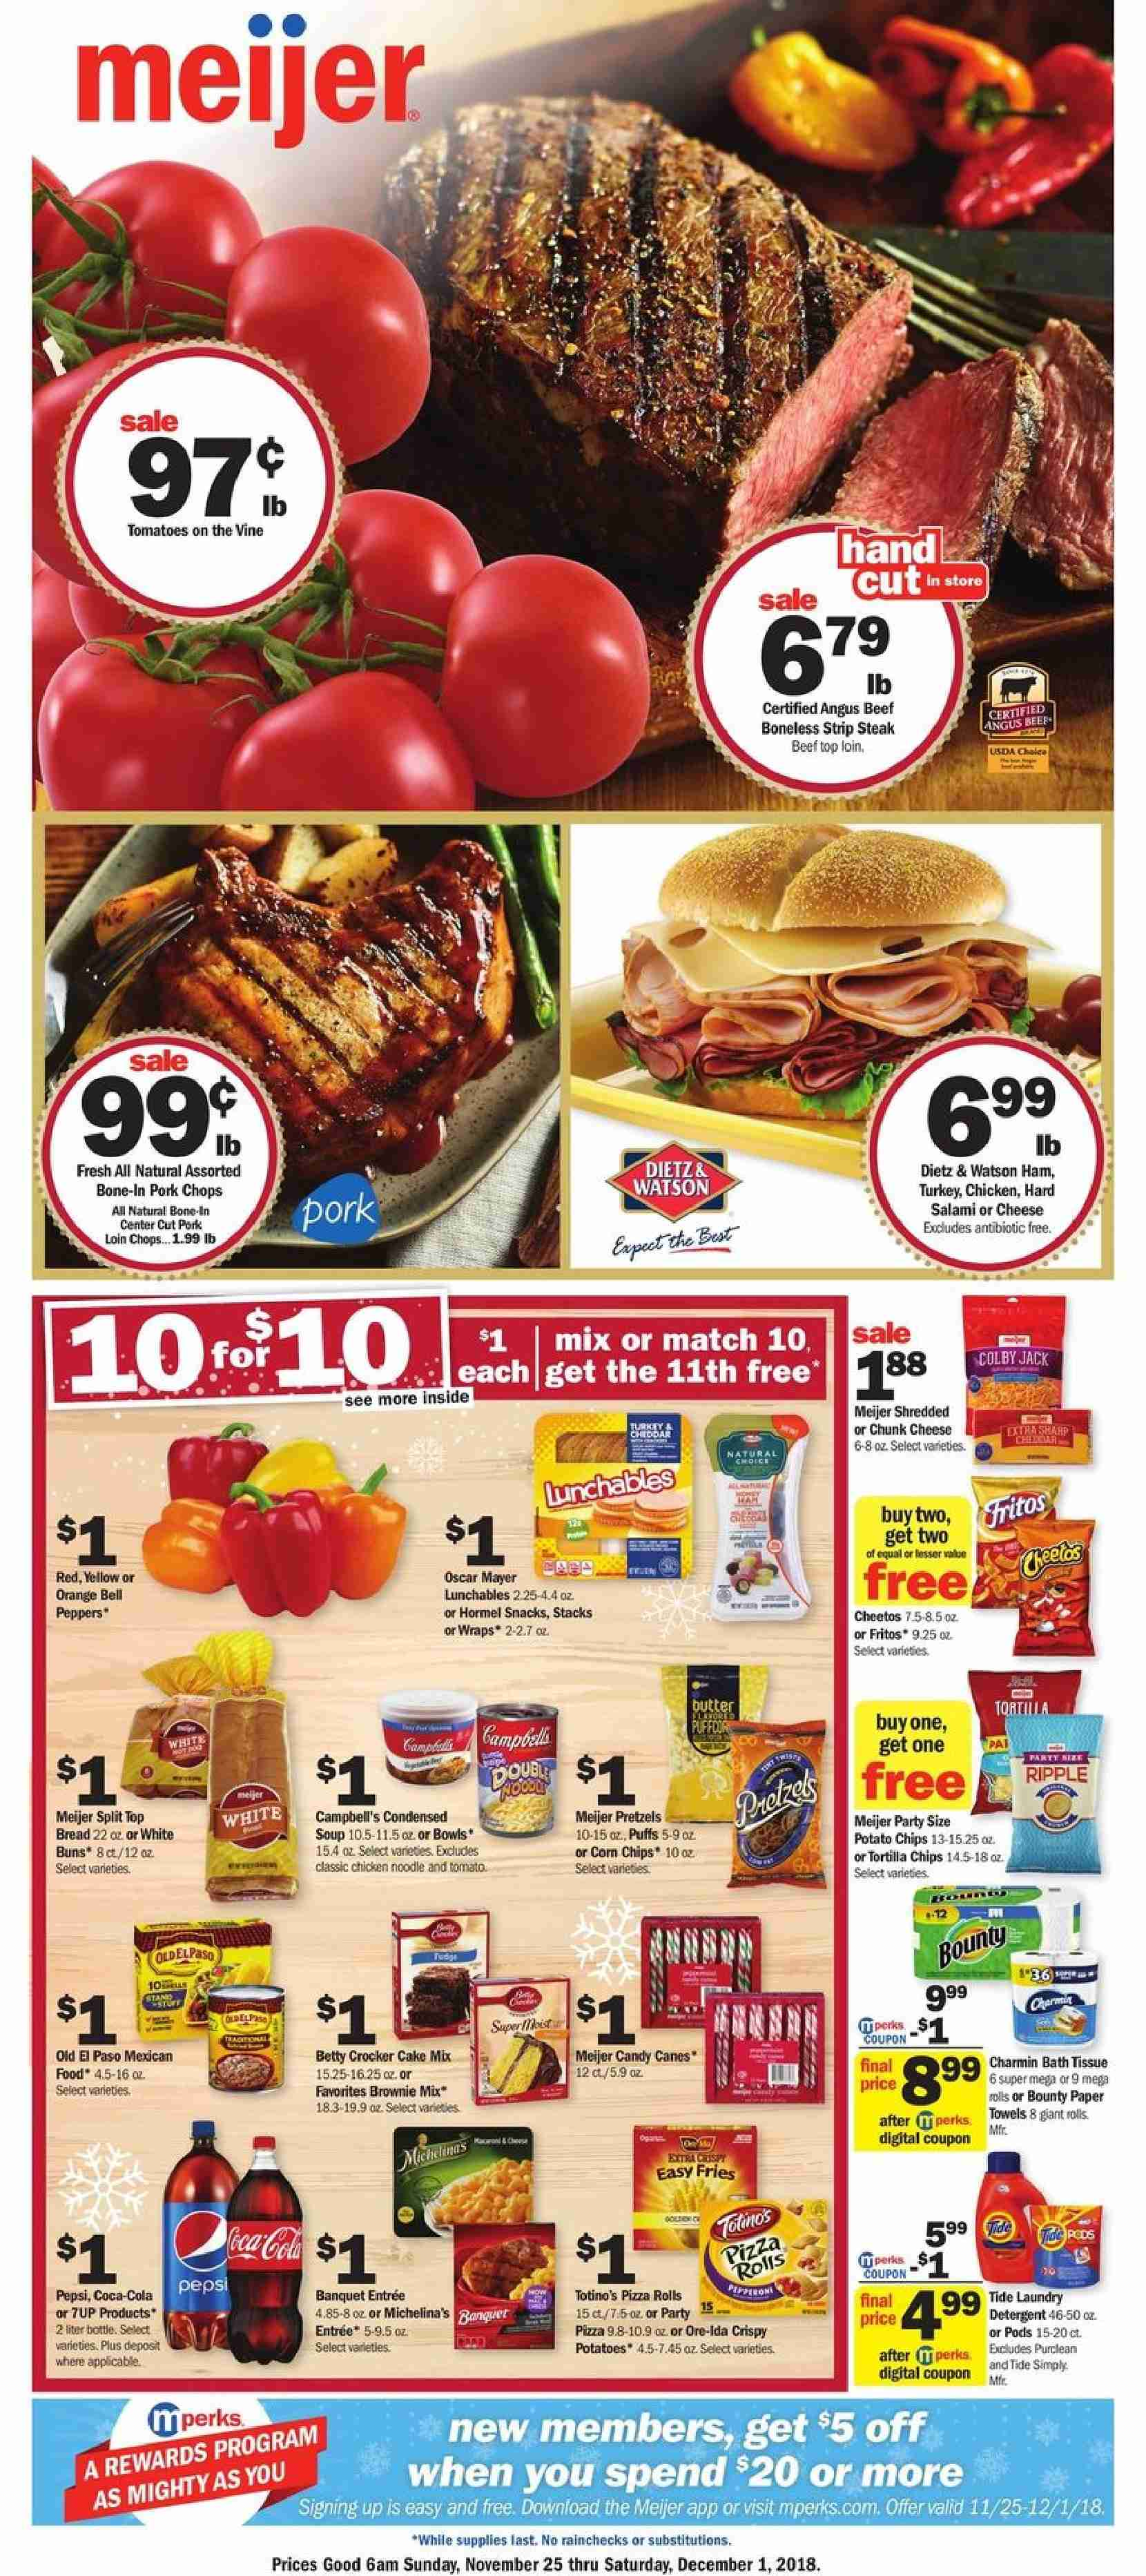 Meijer Flyer - 11.25.2018 - 12.01.2018 - Sales products - bread, pretzels, pizza rolls, rolls, Old El Paso, brownie mix, cake mix, Puffs, buns, orange, pizza, soup, wrap, Lunchables, Hormel, salami, ham, Oscar Mayer, Dietz & Watson, colby cheese, chunk cheese, potato fries, Ore-Ida, candy, Bounty, tortilla chips, potato chips, Cheetos, chips, snack, corn chips, Fritos, noodles, Coca-Cola, Pepsi, 7UP, turkey, beef meat, steak, striploin steak, pork chops, pork loin, pork meat, bath tissue, Charmin, Tide, paper. Page 1.